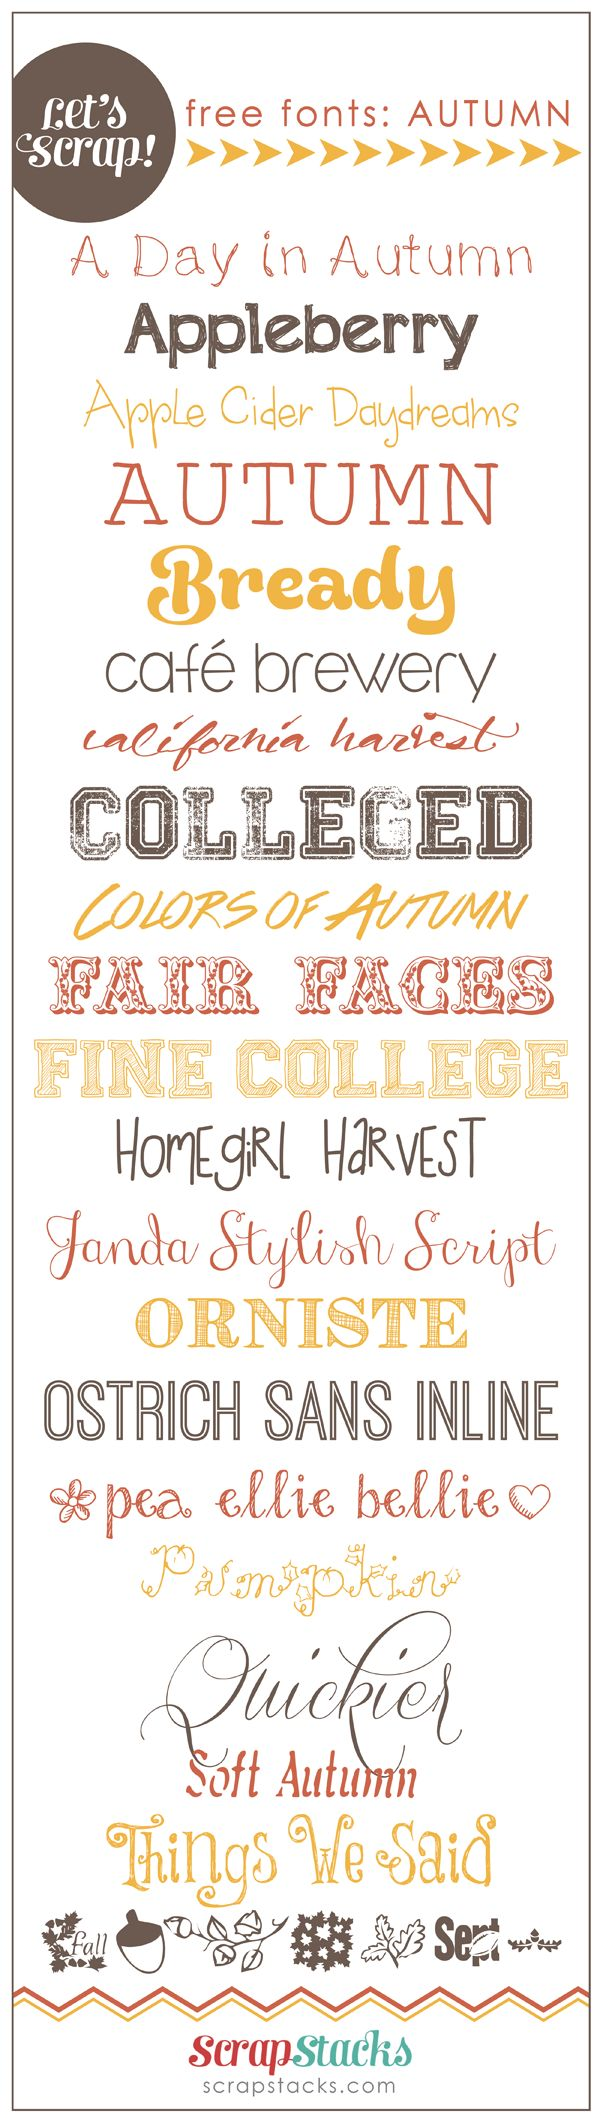 My scrapbook ideas kelapa gading